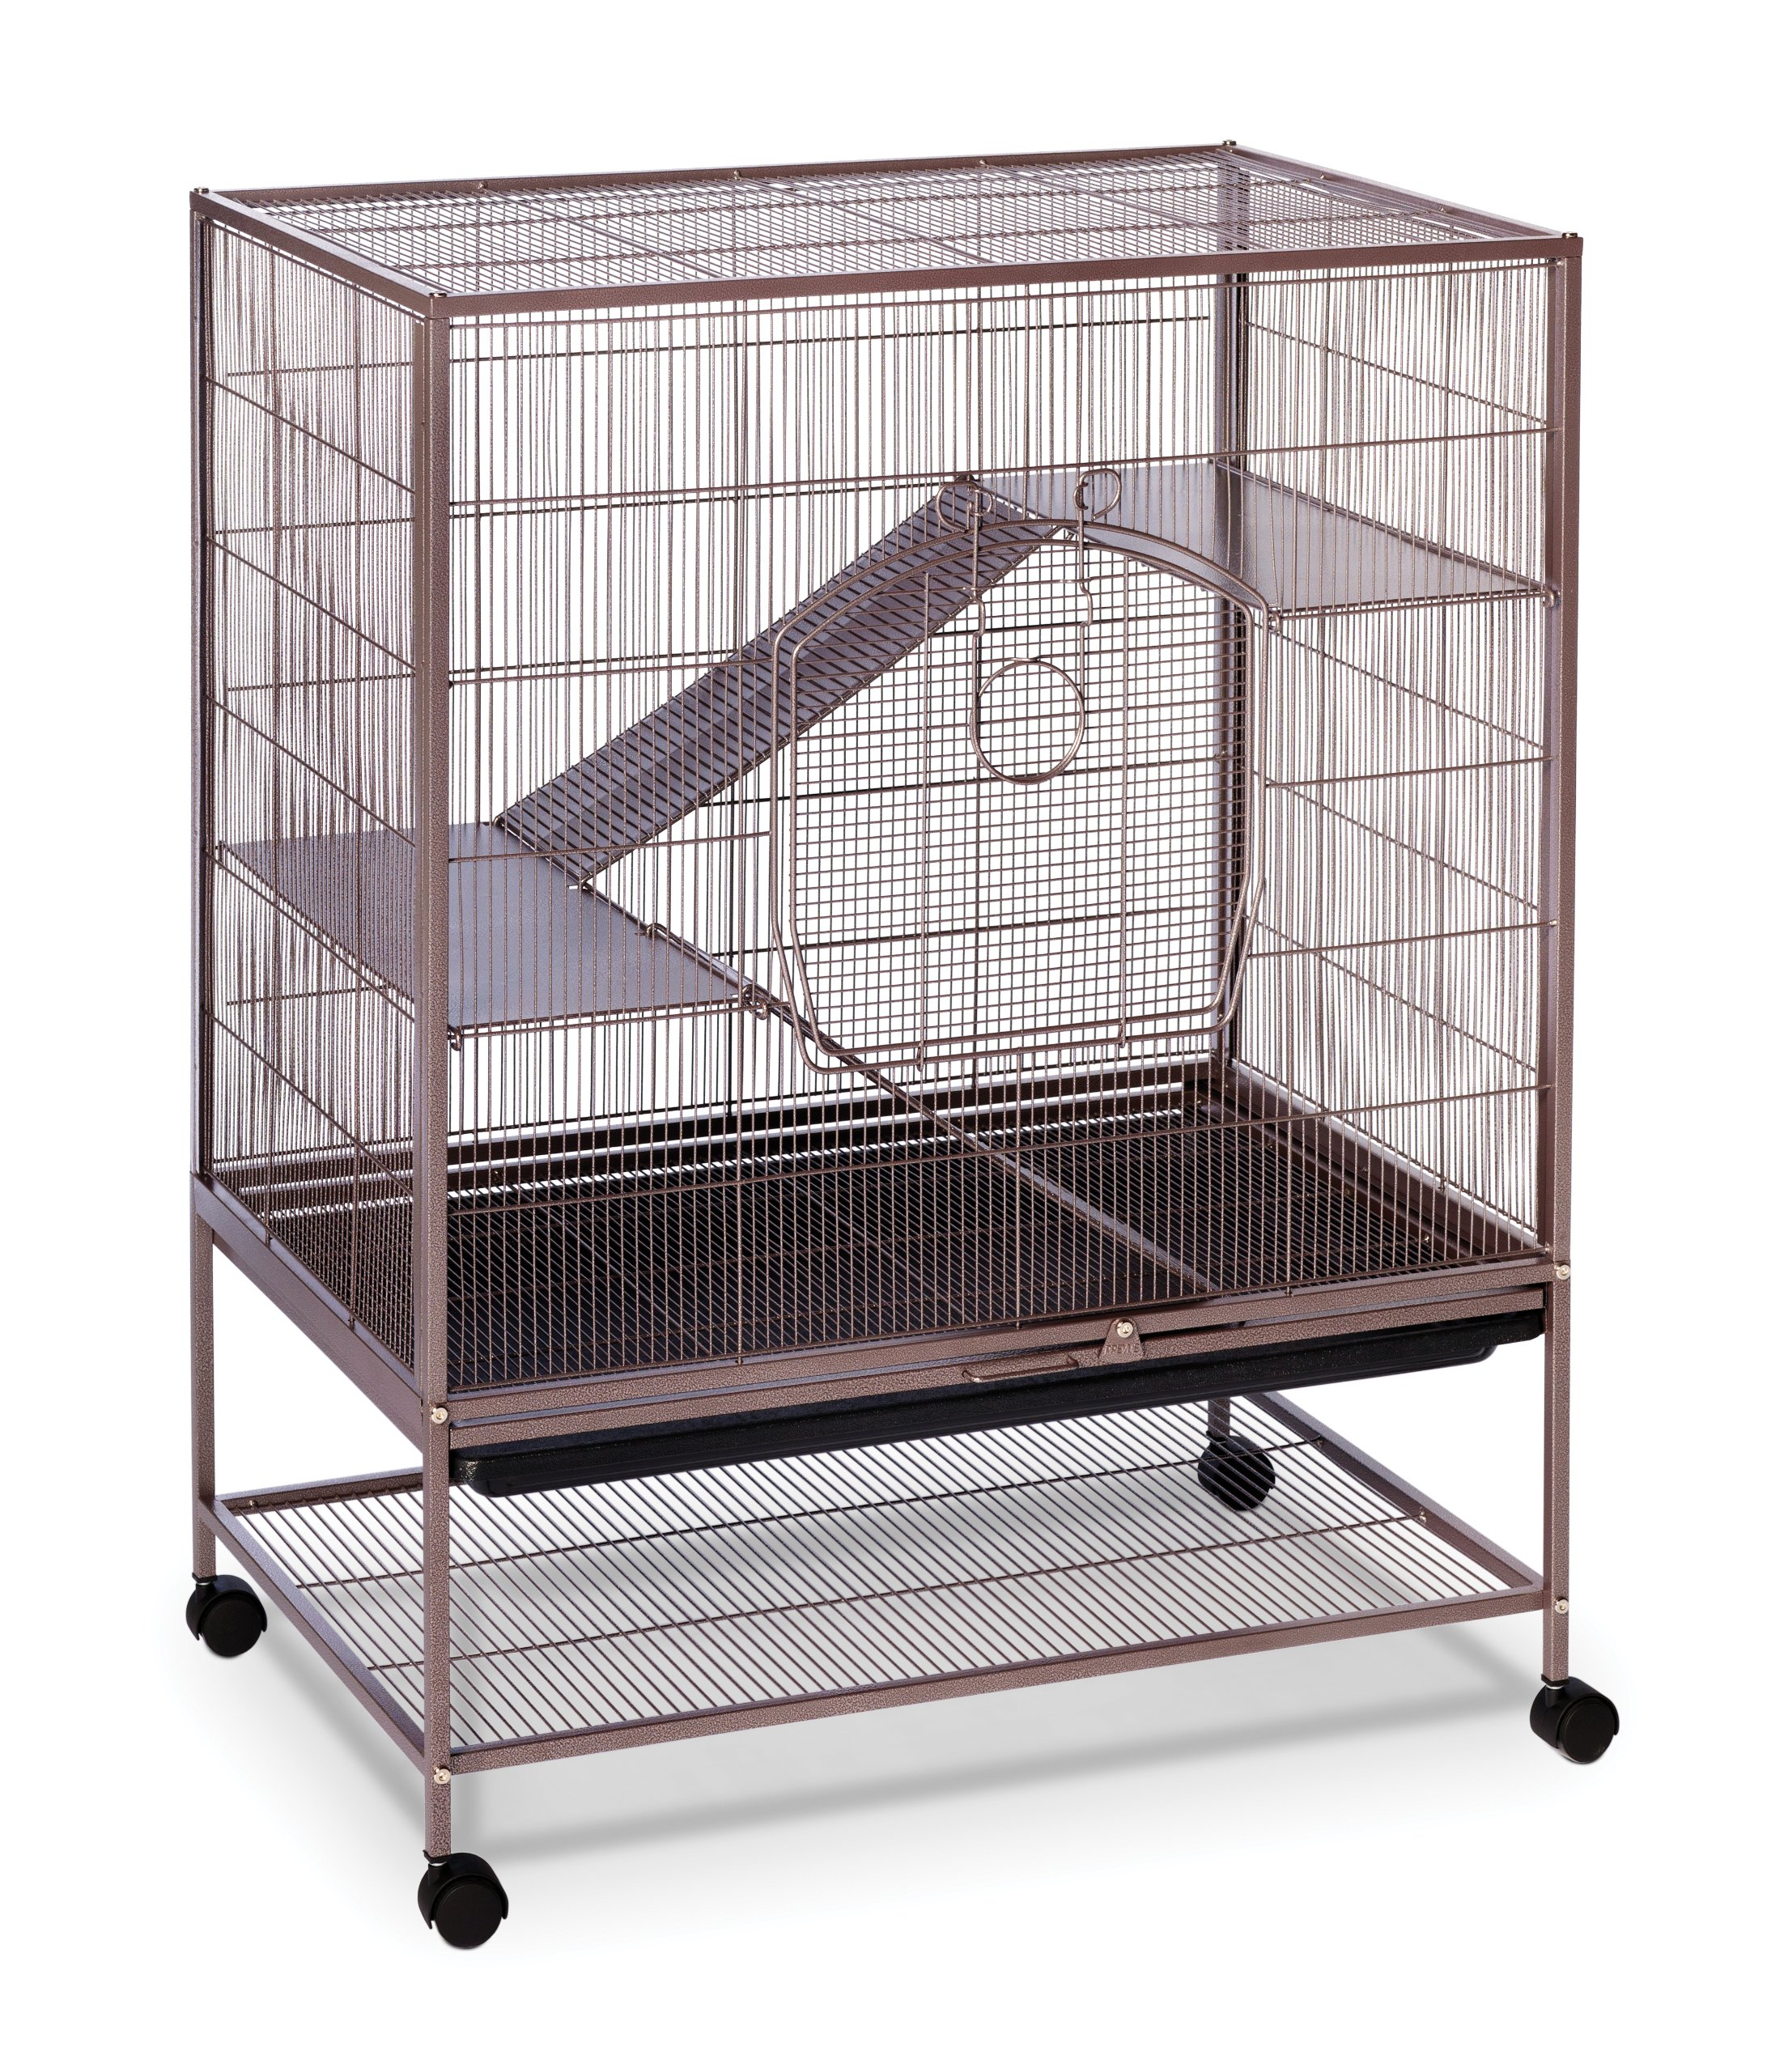 Prevue Rat and Chinchilla Cage 495 Earthtone Dusted Rose, 31 x 20.5 x 40 IN by Prevue